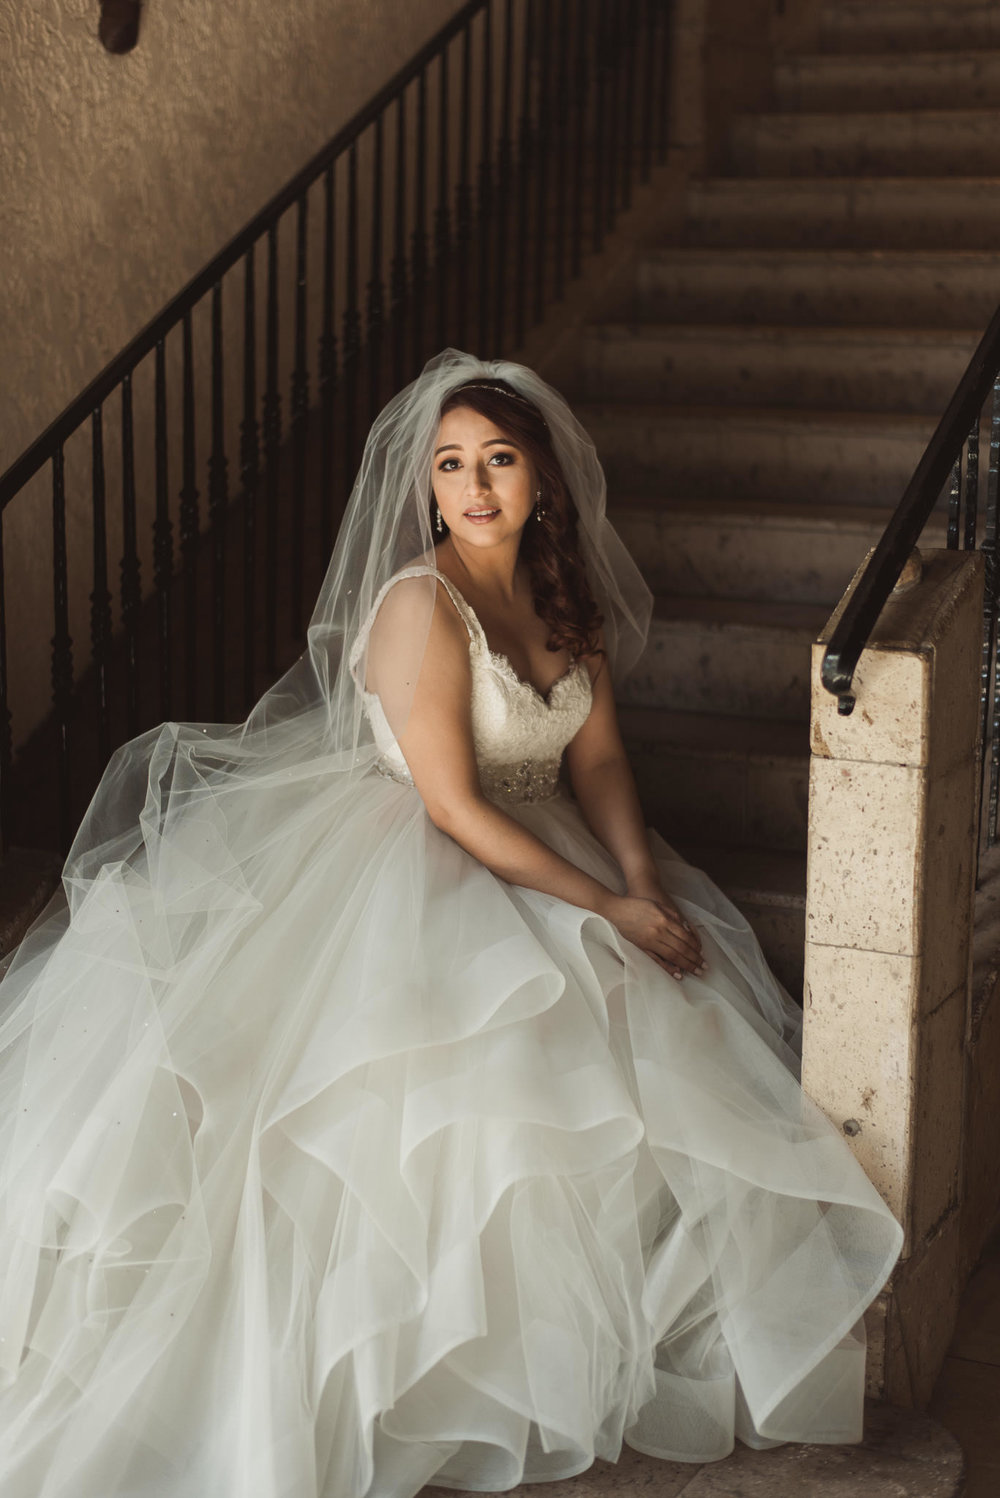 stephanie-bridal-sm-24.jpg